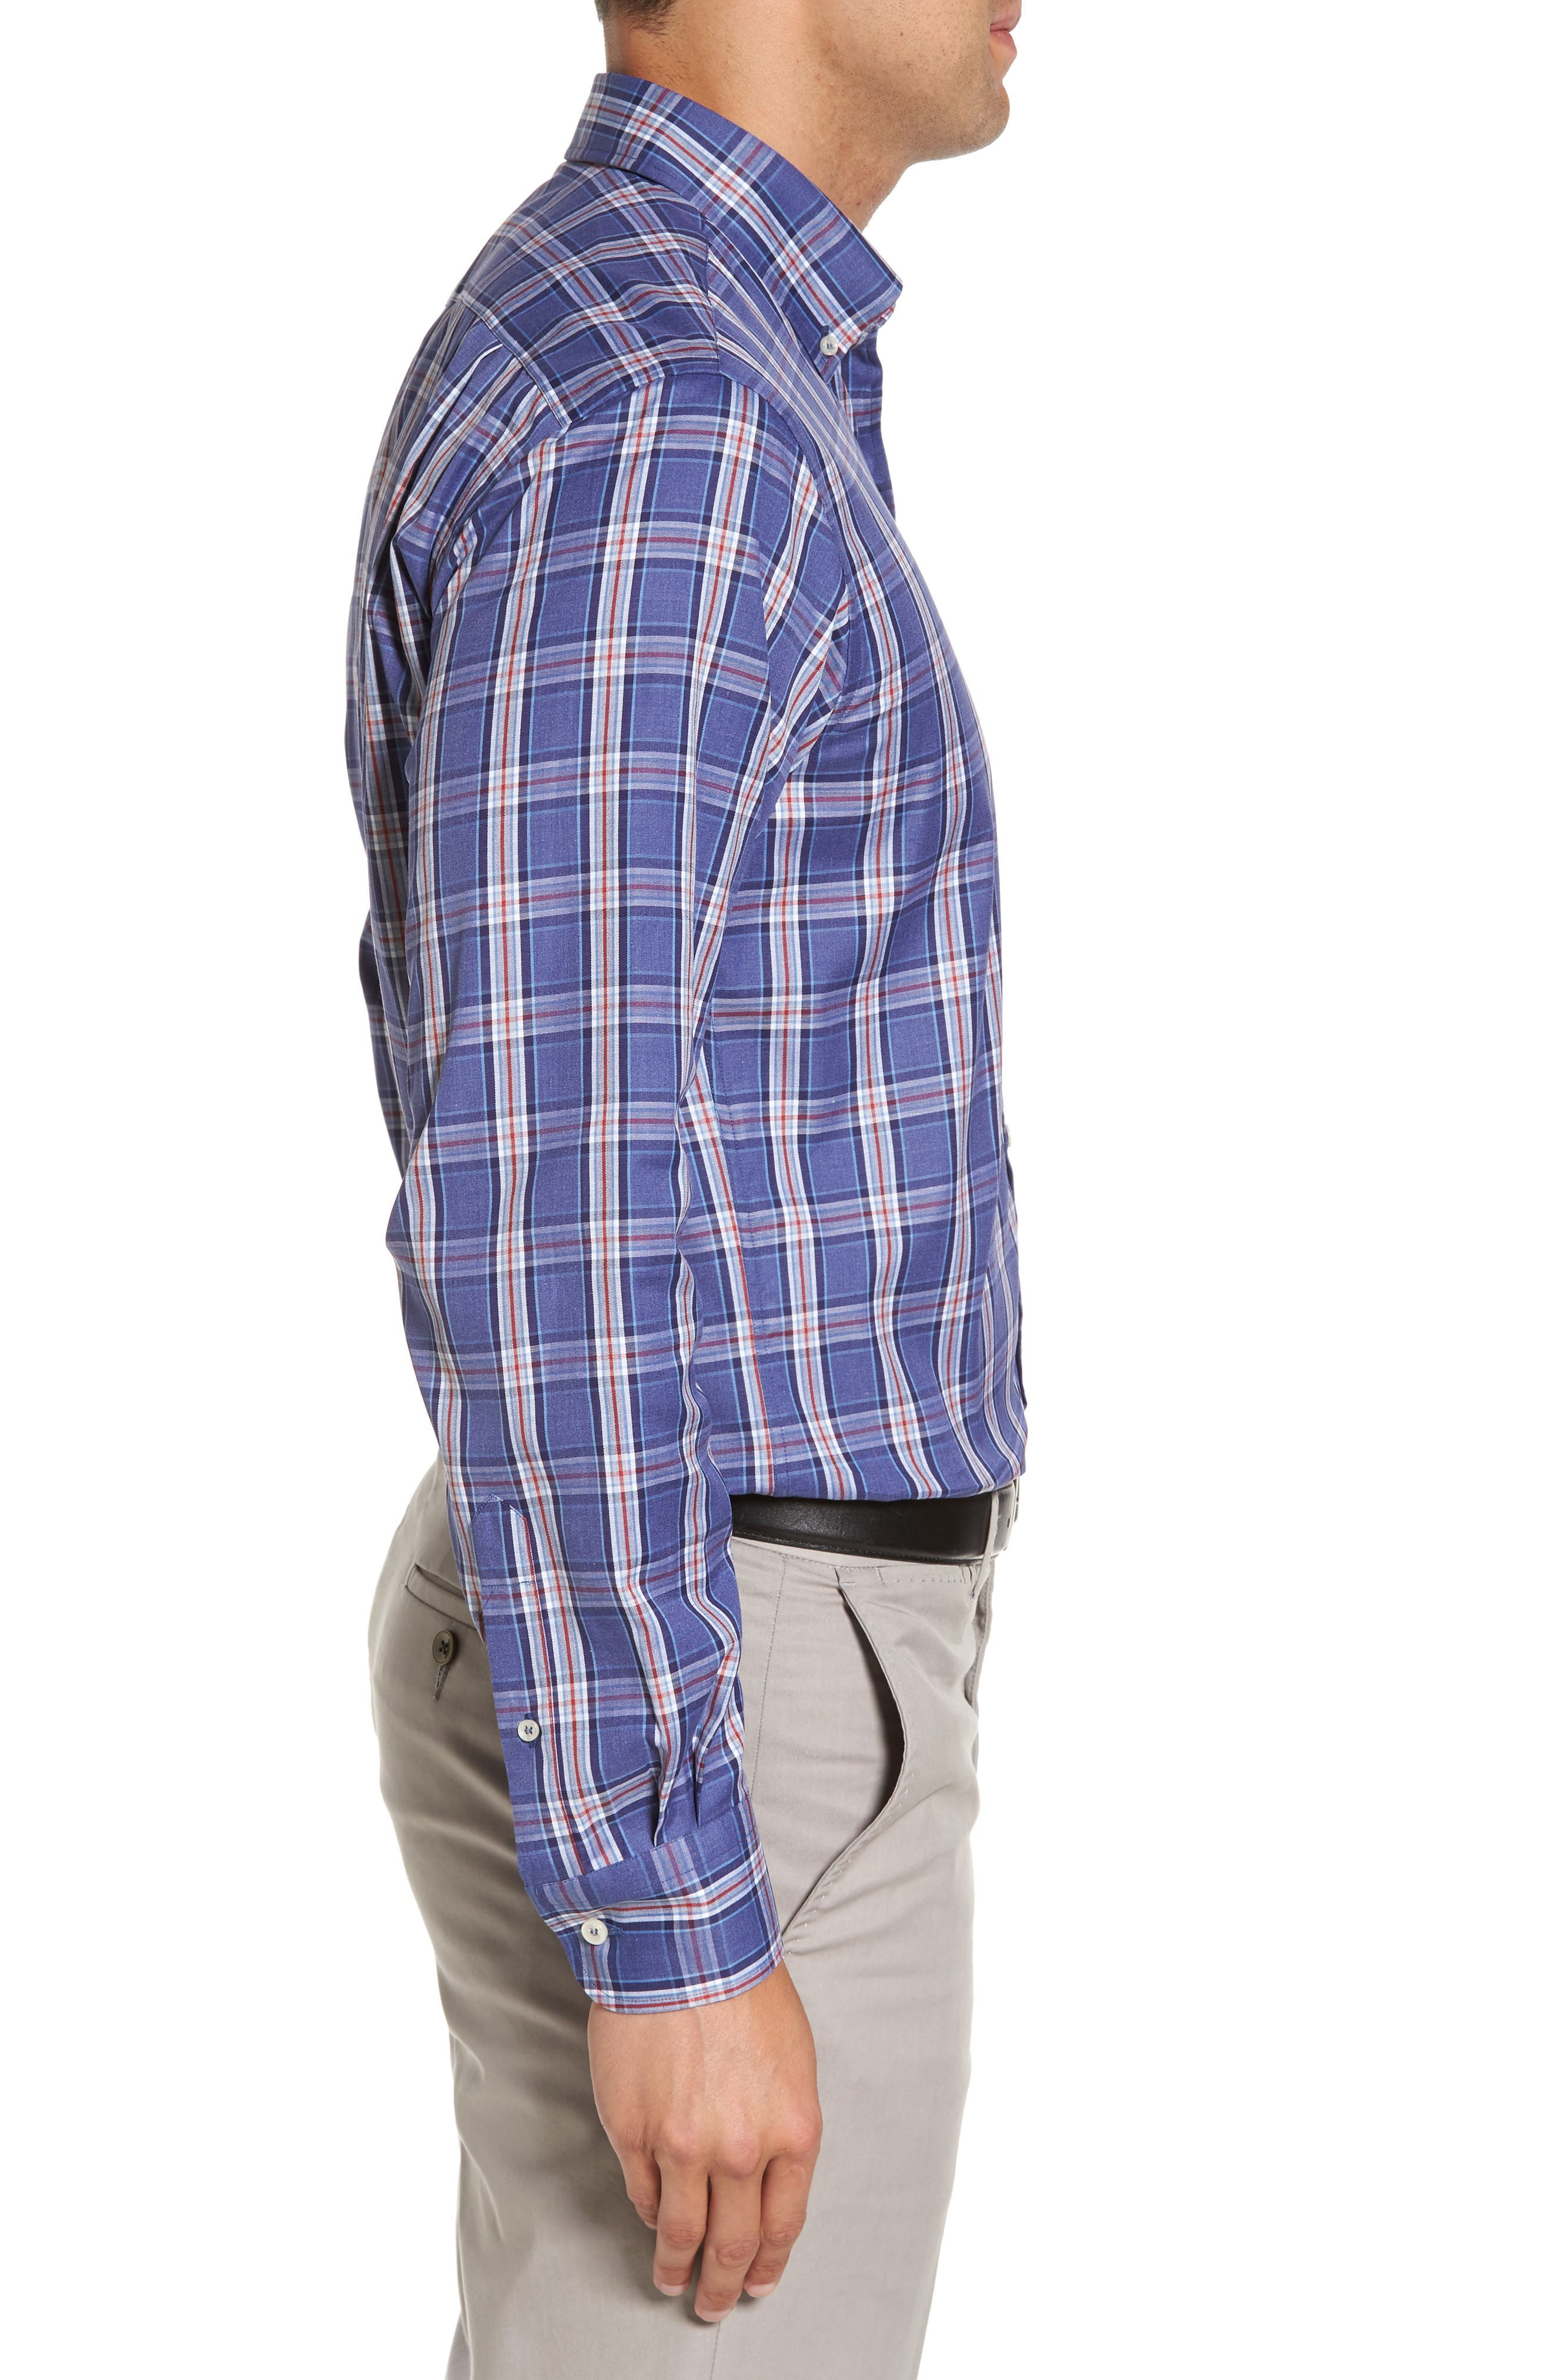 Paul&Shark Plaid Sport Shirt,                             Alternate thumbnail 3, color,                             400